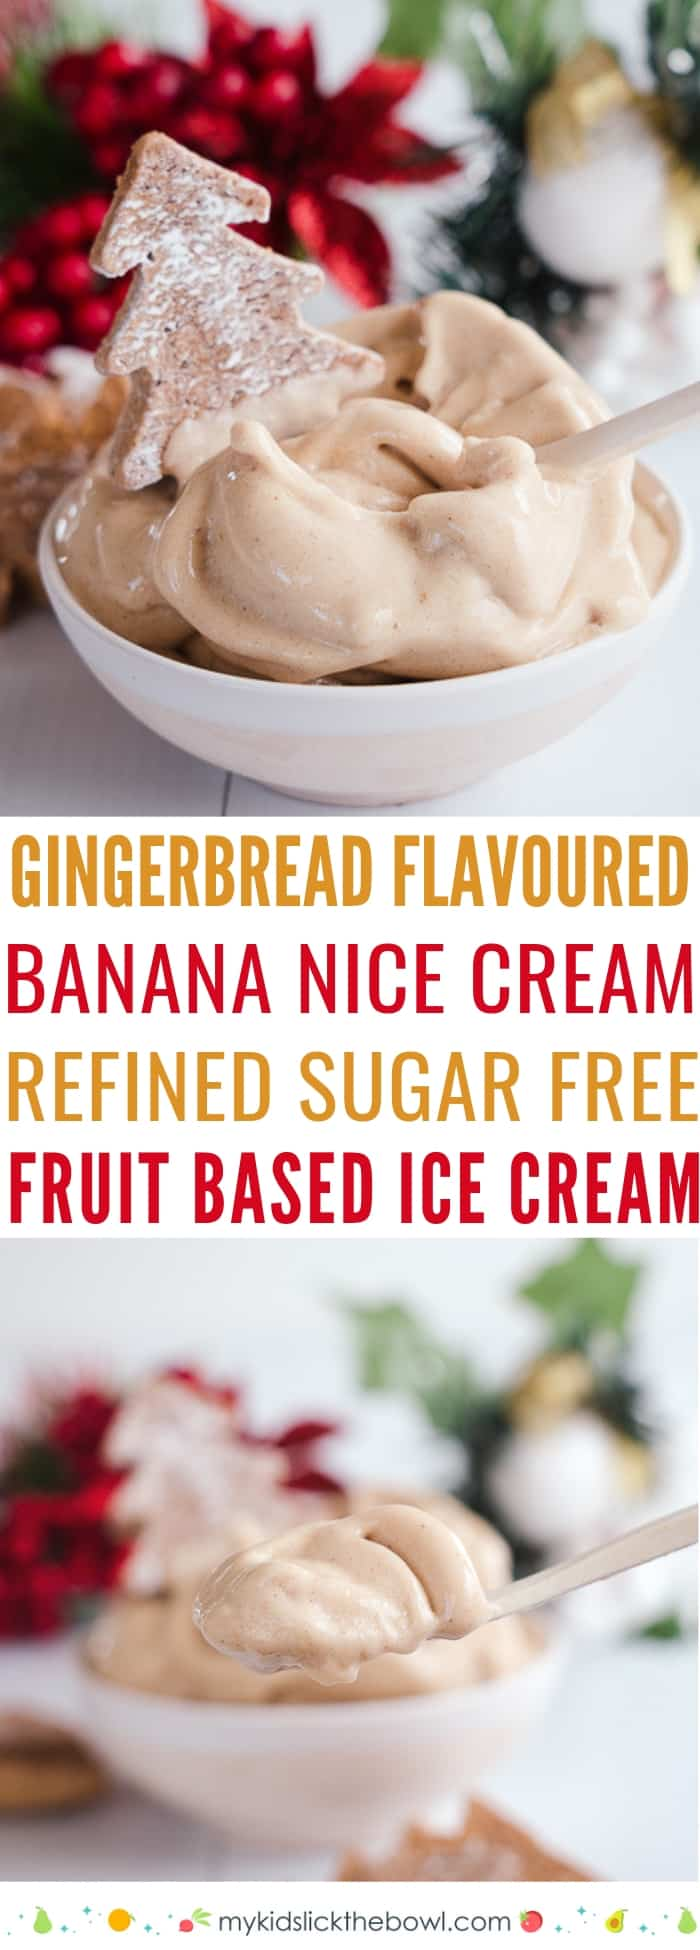 bowl of gingerbread flavoured ice cream